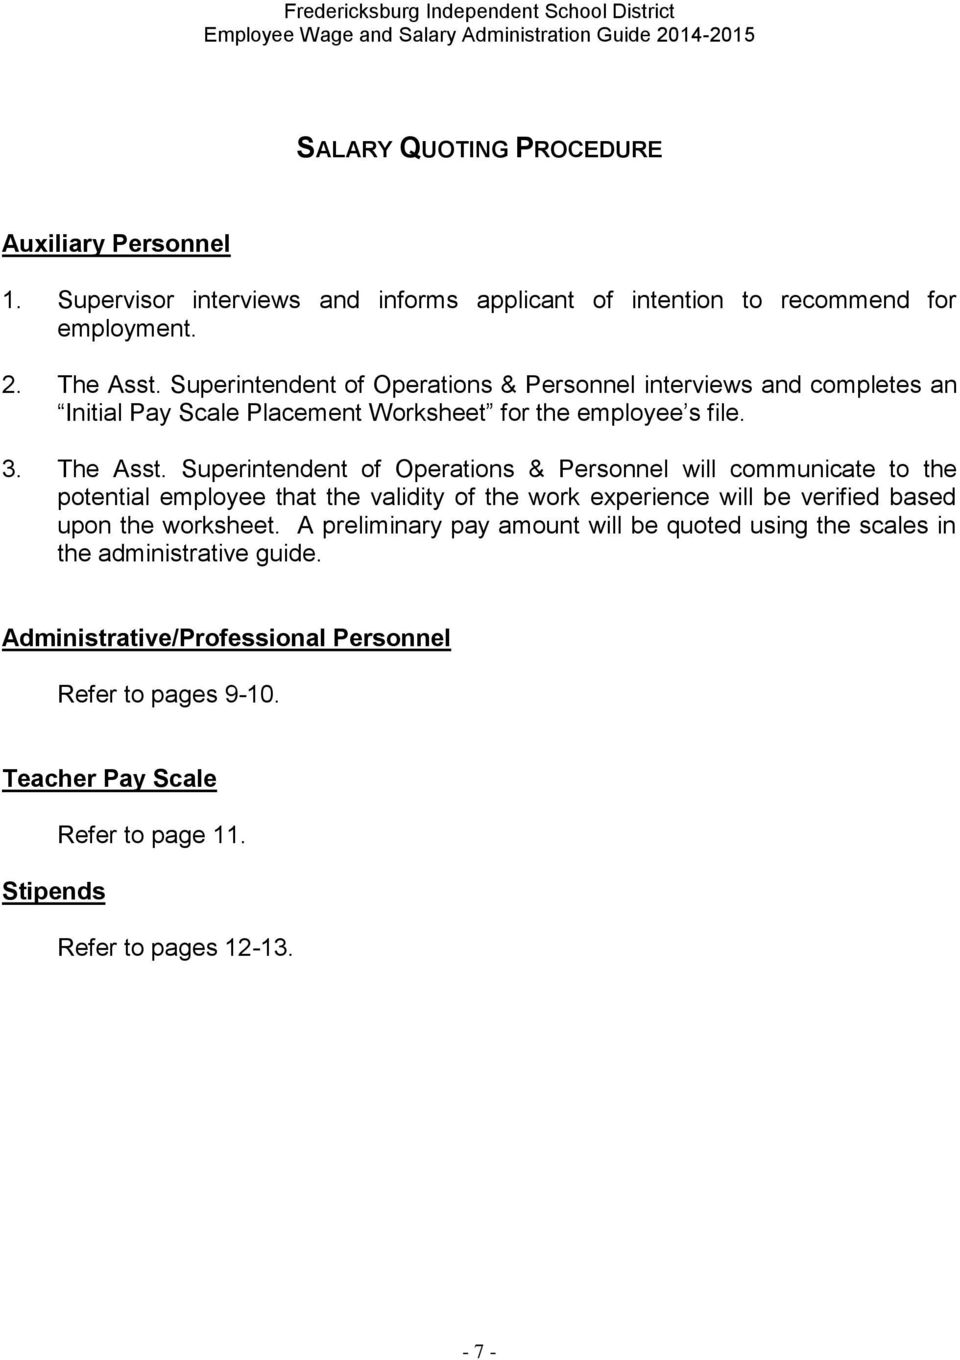 Superintendent of Operations & Personnel will communicate to the potential employee that the validity of the work experience will be verified based upon the worksheet.